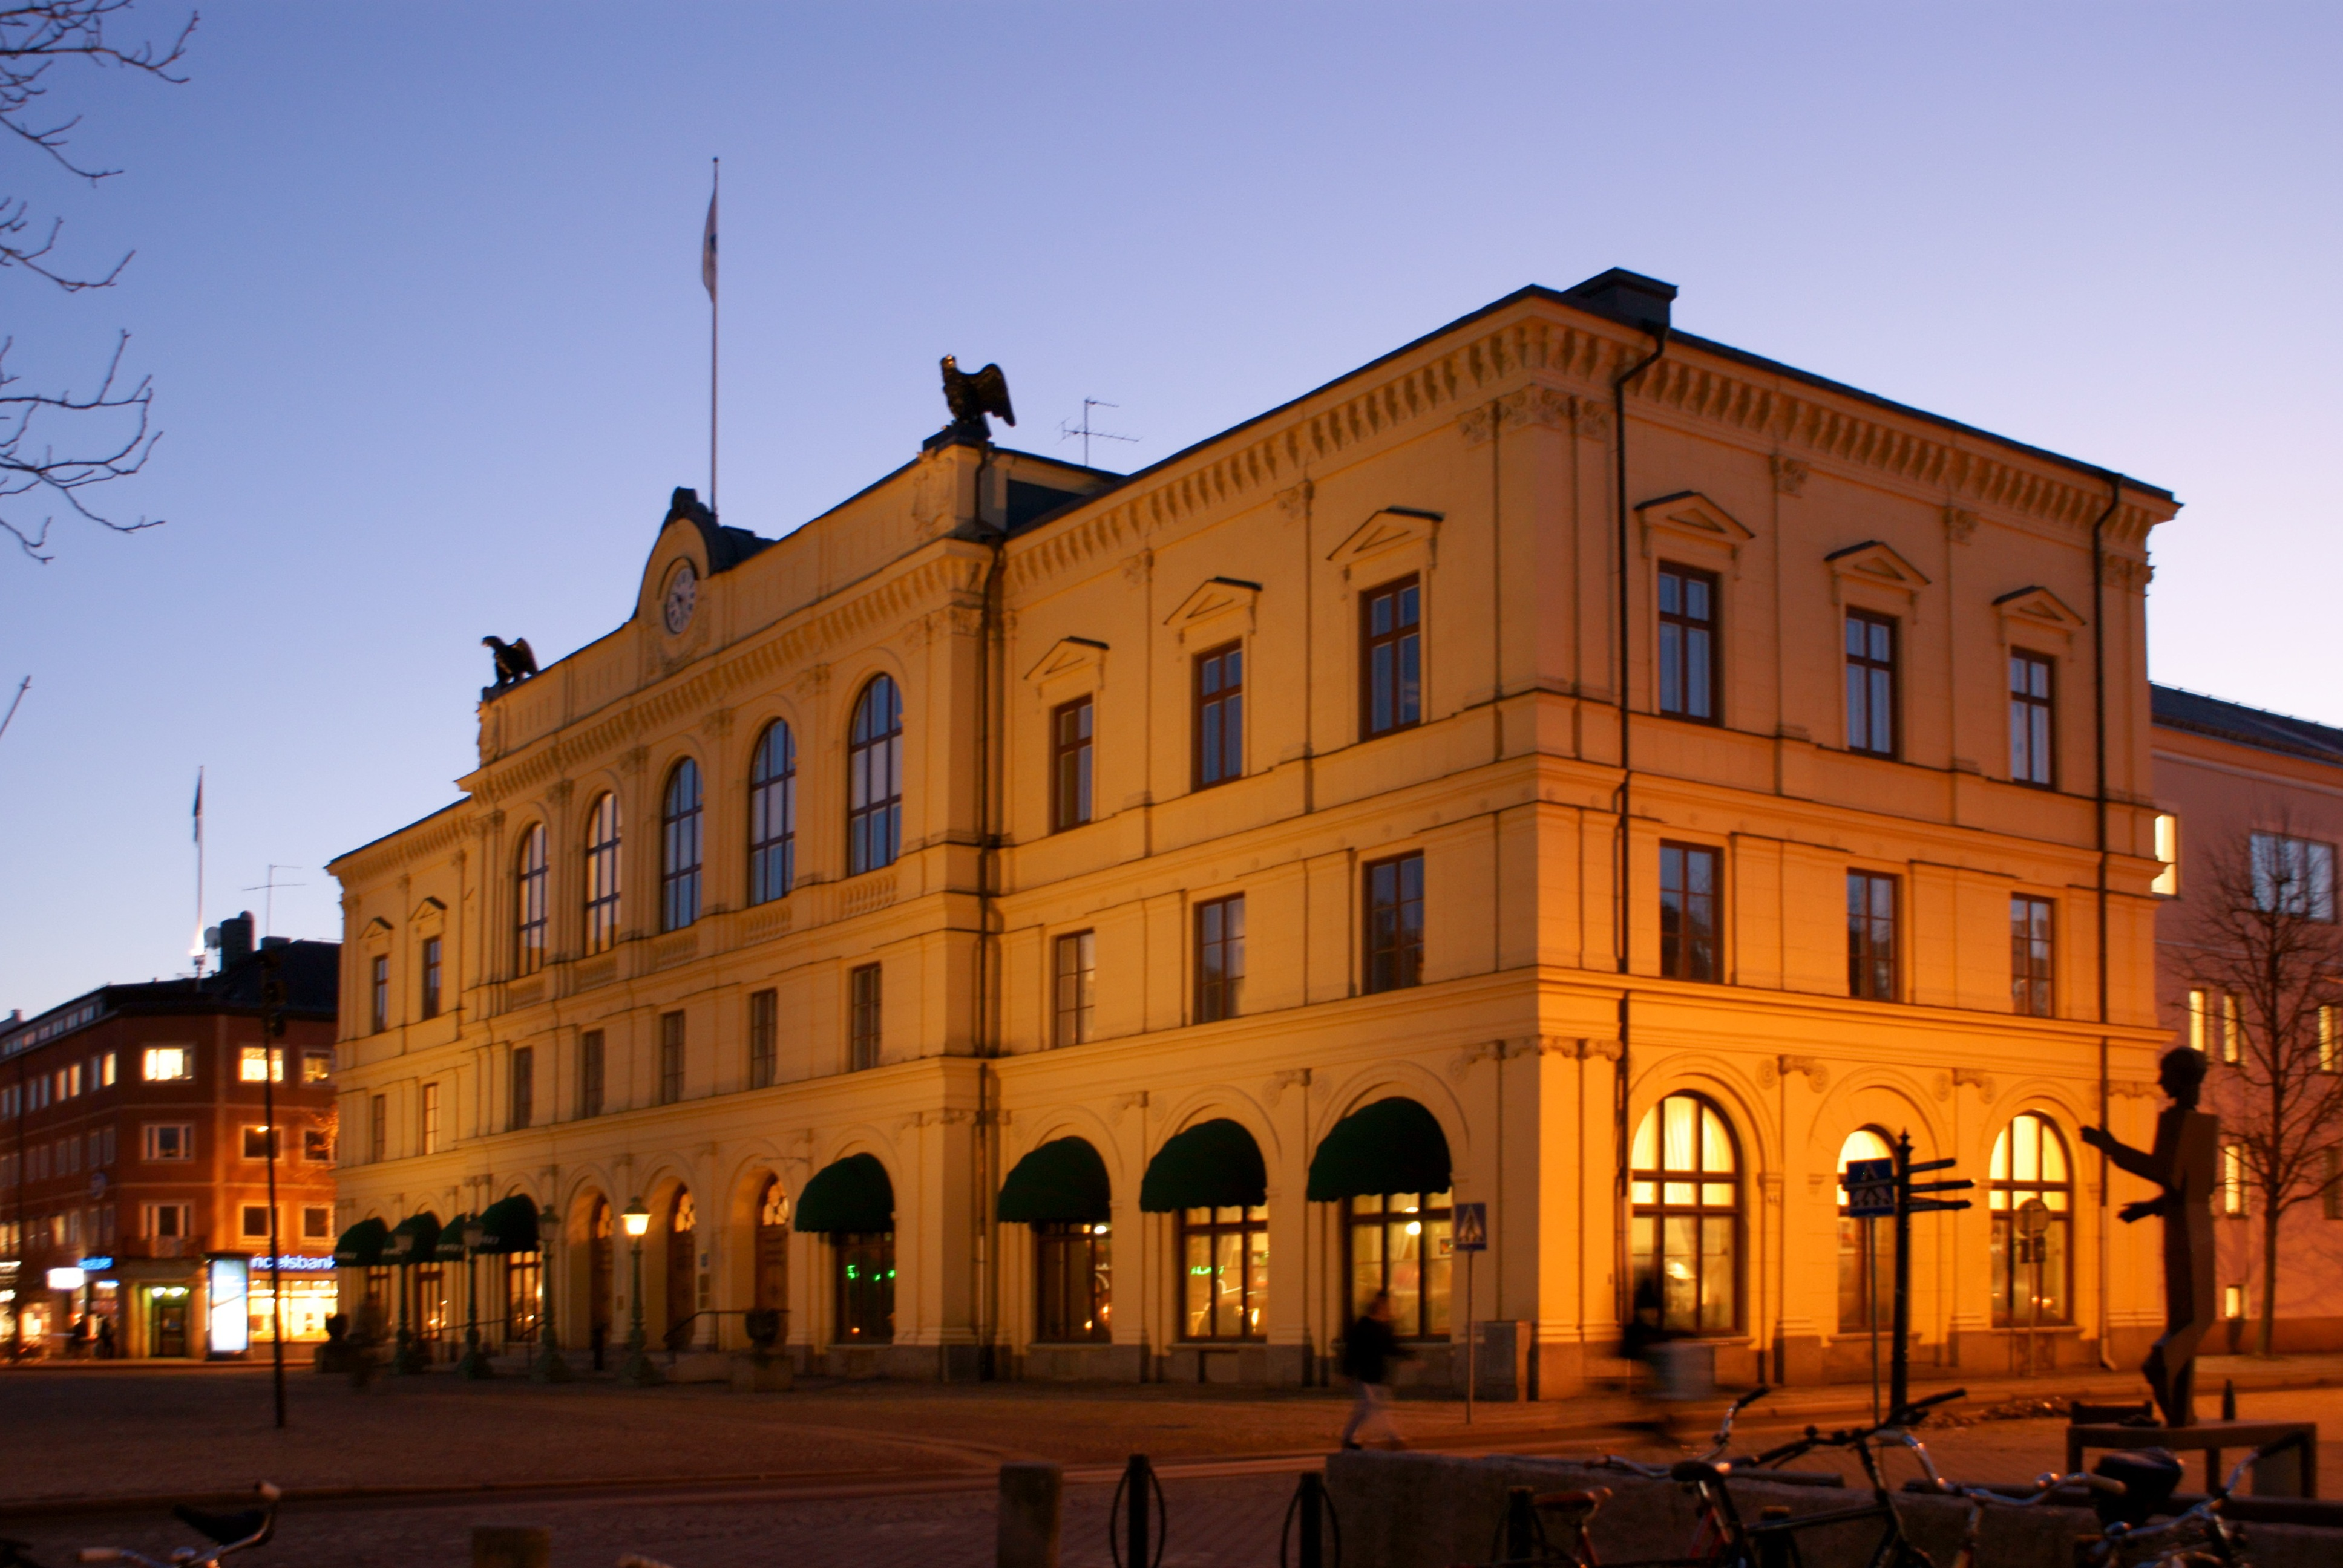 karlstad dating Latest local news for karlstad, mn : local news for karlstad, mn continually updated from thousands of sources on the web.